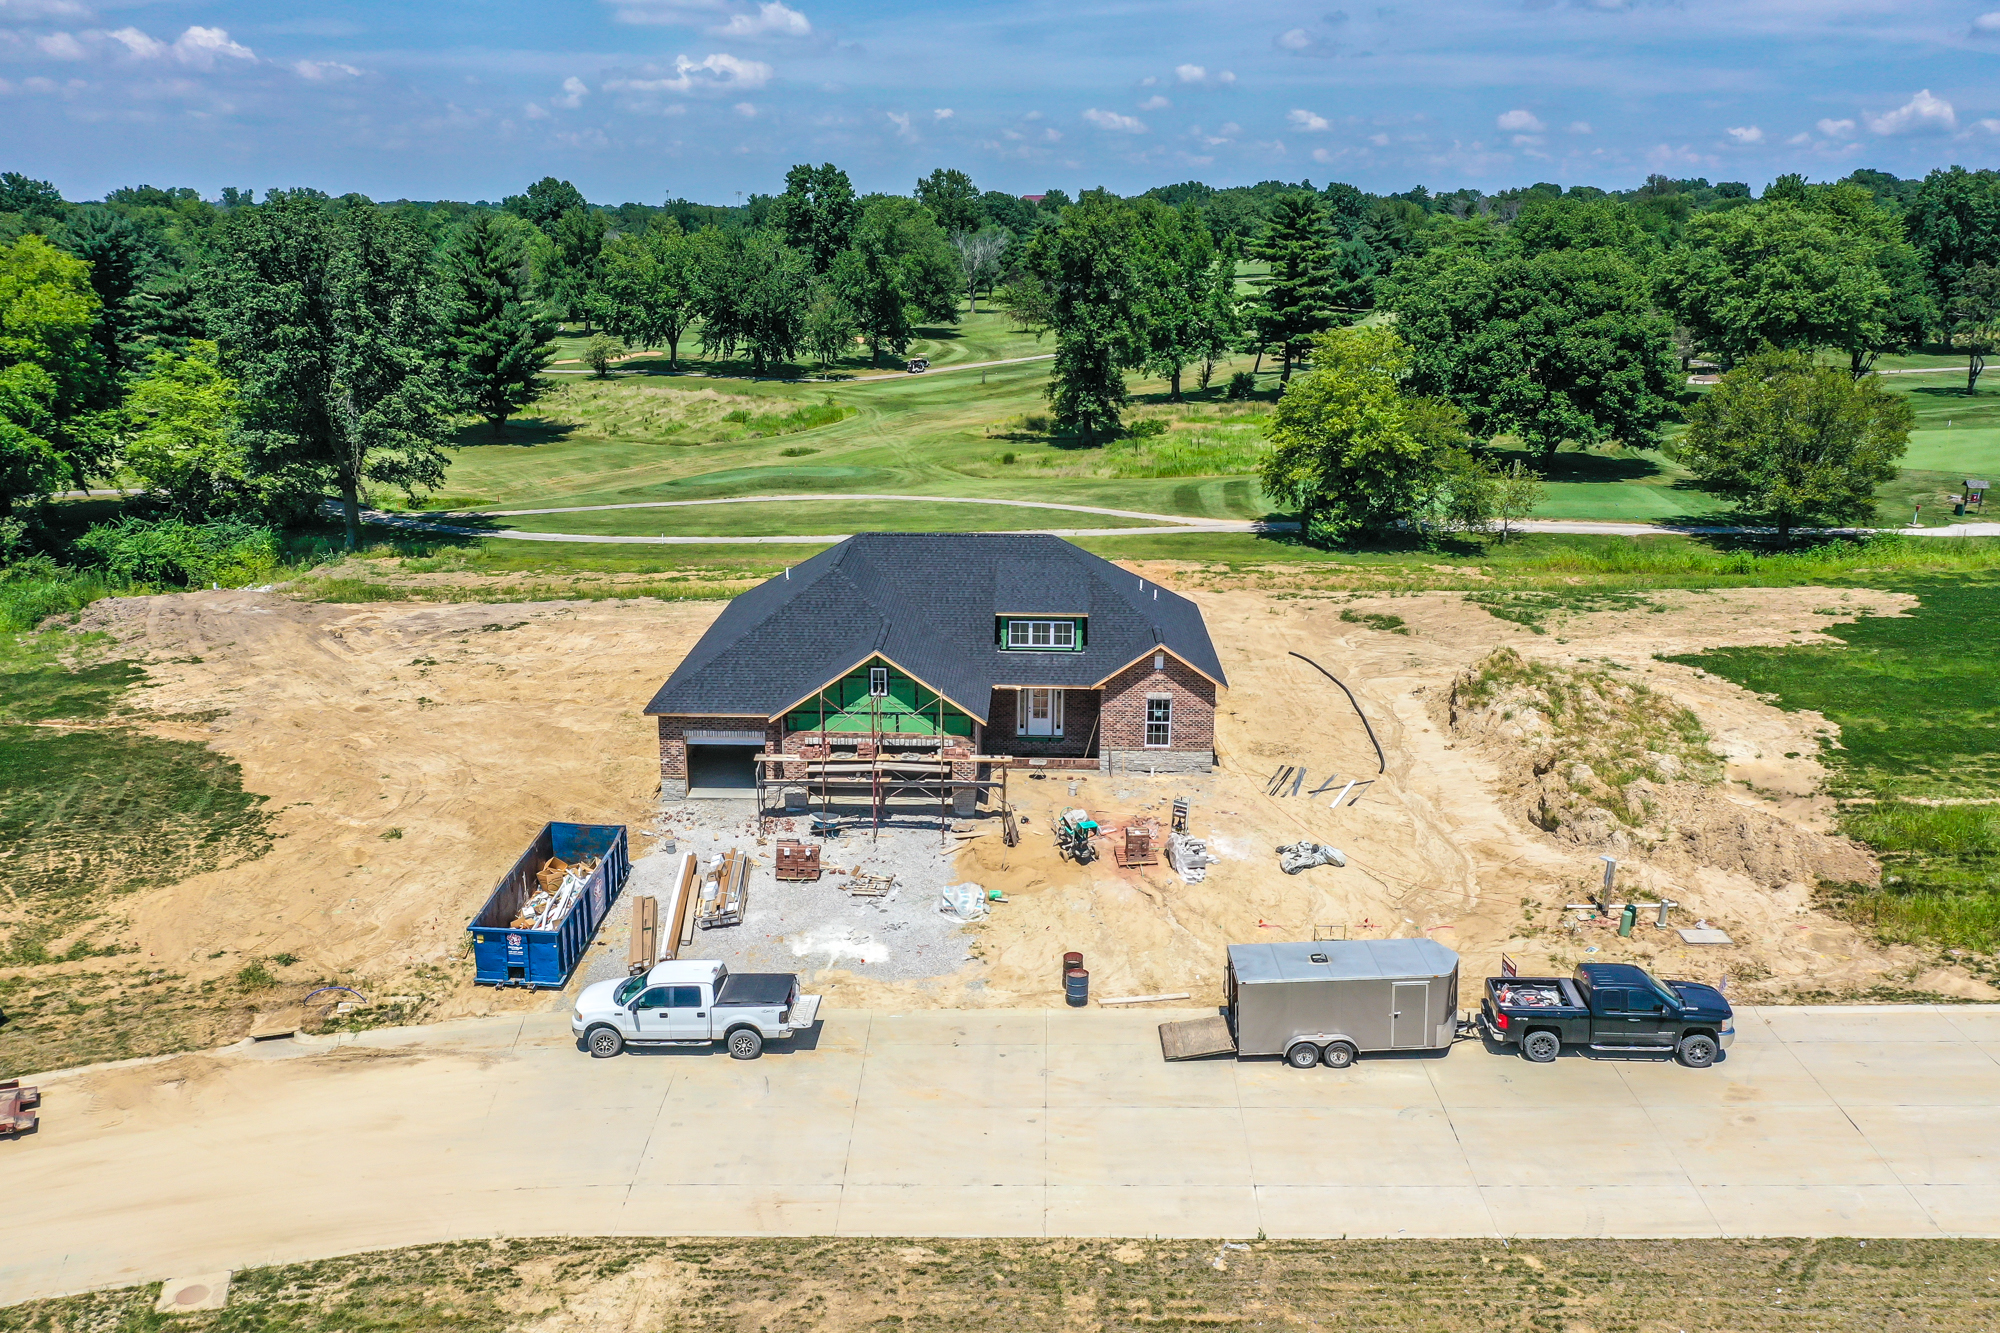 New_Construction_Homes_For_Sale_Shiloh_Illinois_Near_Scott_AFB-20.jpg